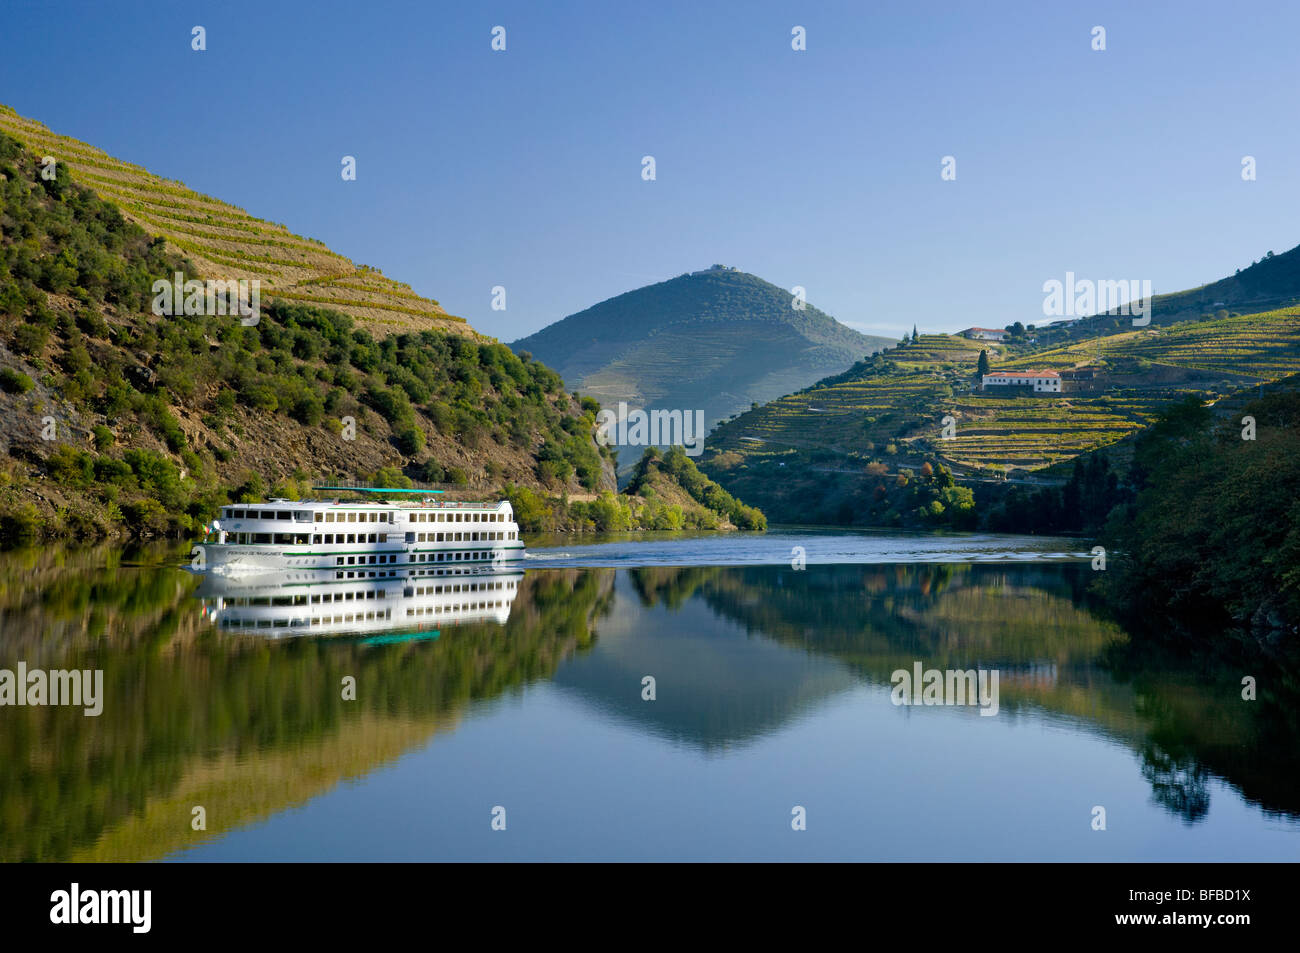 Portugal, the Alto Douro district, an excursion boat on the Douro river between Regua and Pinhao - Stock Image